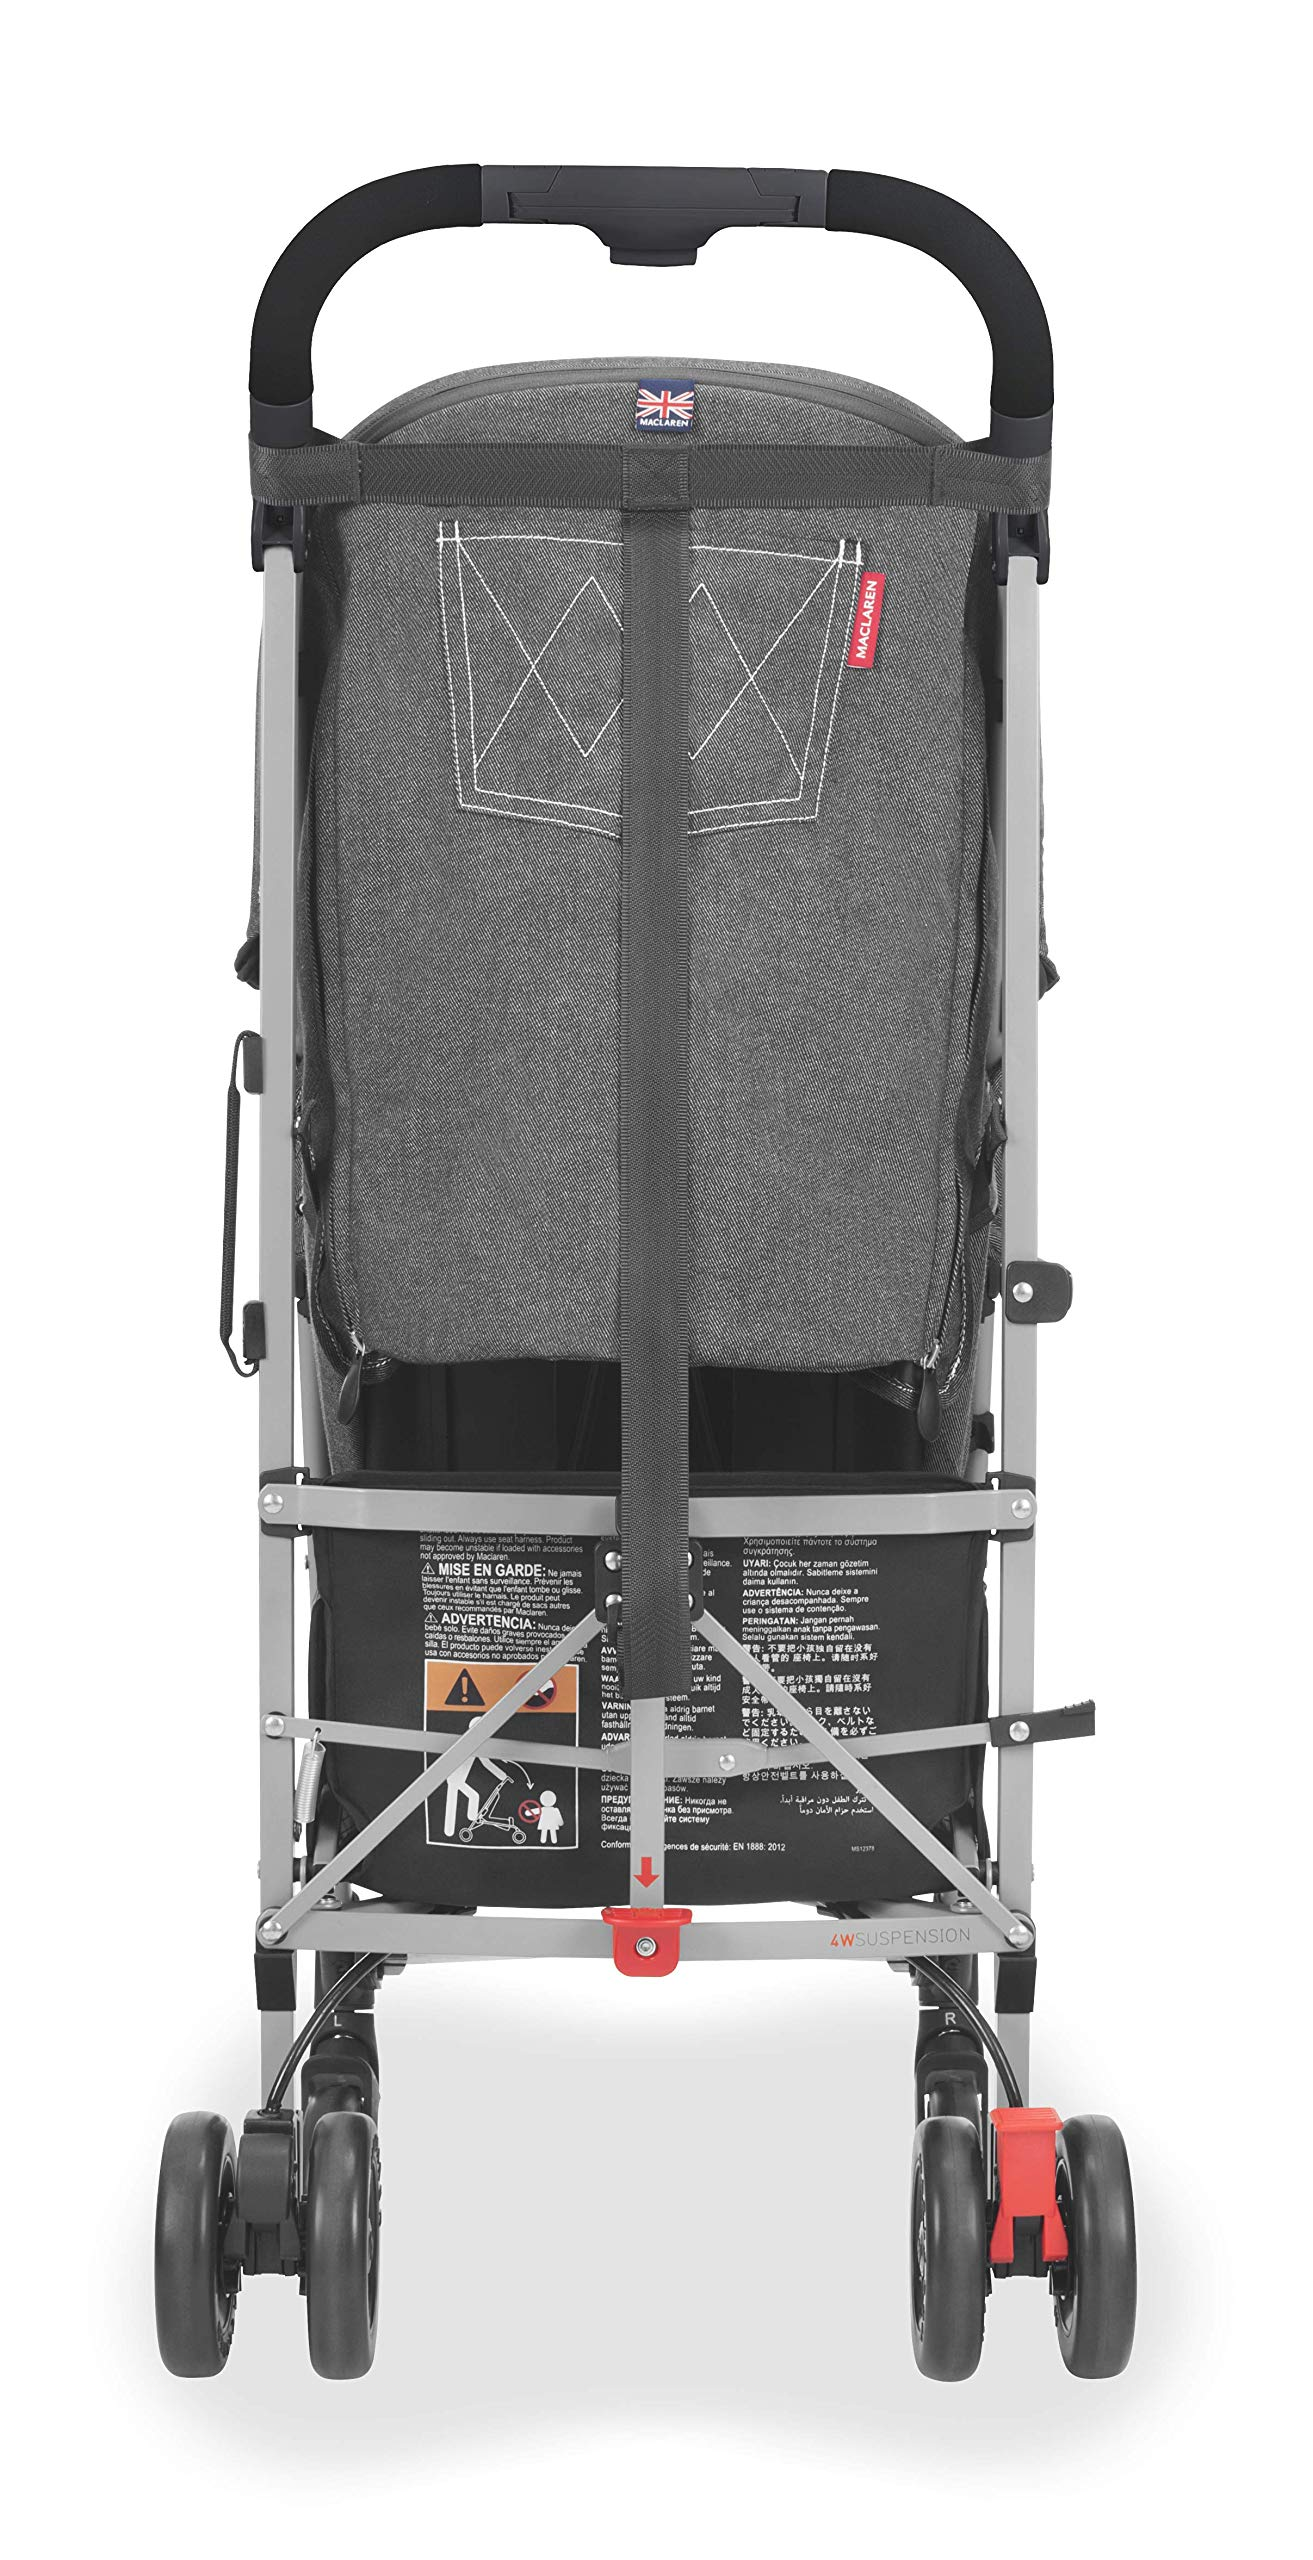 Maclaren Quest Arc Stroller- Ideal for Newborns up to 25kg with extendable UPF 50+/Waterproof Hood, Multi-Position seat and 4-Wheel Suspension. Maclaren Carrycot Compatible. Accessories in The Box Maclaren Lightweight and compact. ideal for newborns and children up to 25kg. you can do it all with one-hand- open, close, push and adjust the seat, footrest and front safety lock Comfy and perfect for travel. the quest arc's padded seat reclines into 4 positions and converts into a new-born safety system. coupled with ultra light flat-free eva tires and all wheel suspension Smart product for active parents. compatible with the maclaren carrycot. all maclaren strollers have waterproof/ upf 50+ hoods to protect from the elements and machine washable seats to keep tidy 10